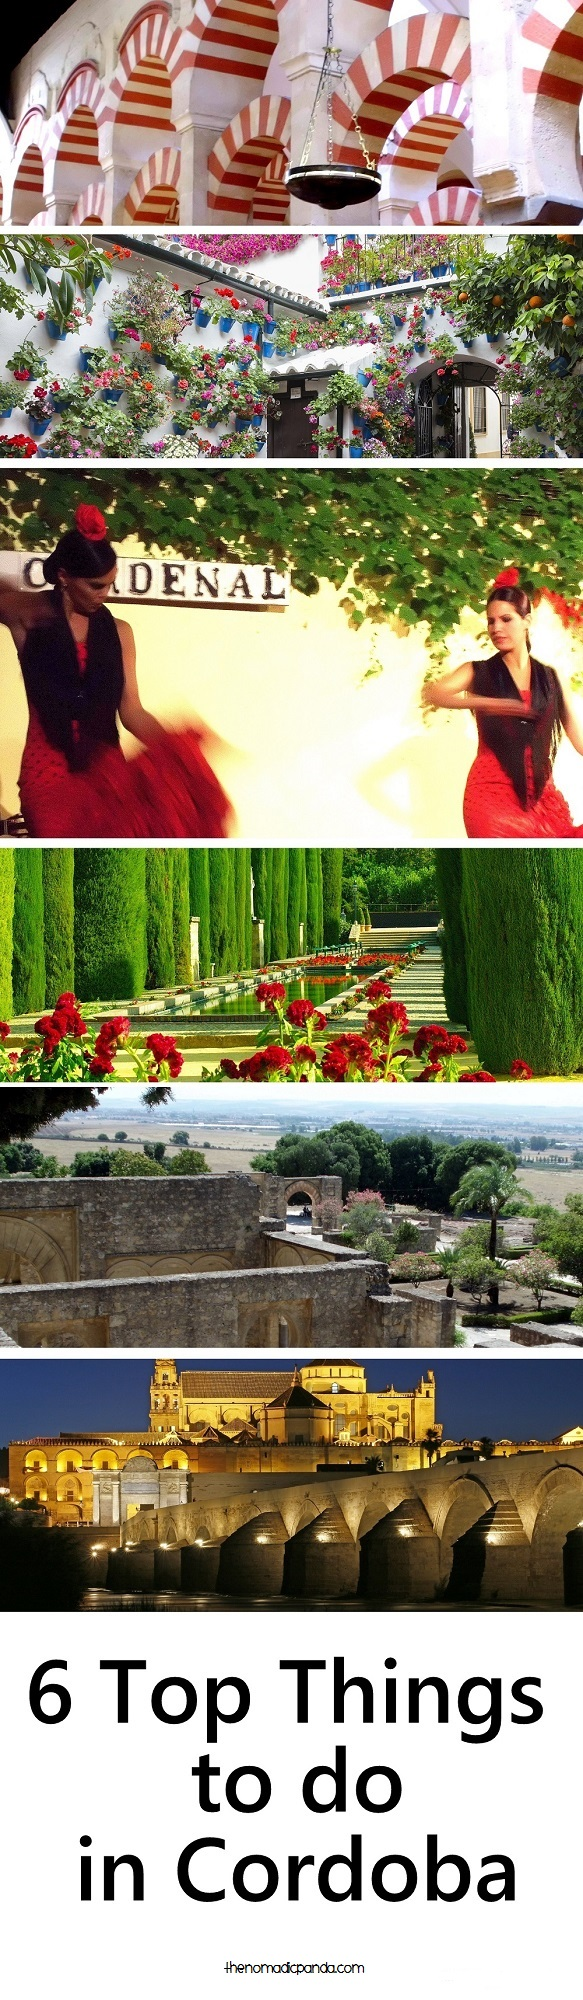 Top things to do in Cordoba, Spain